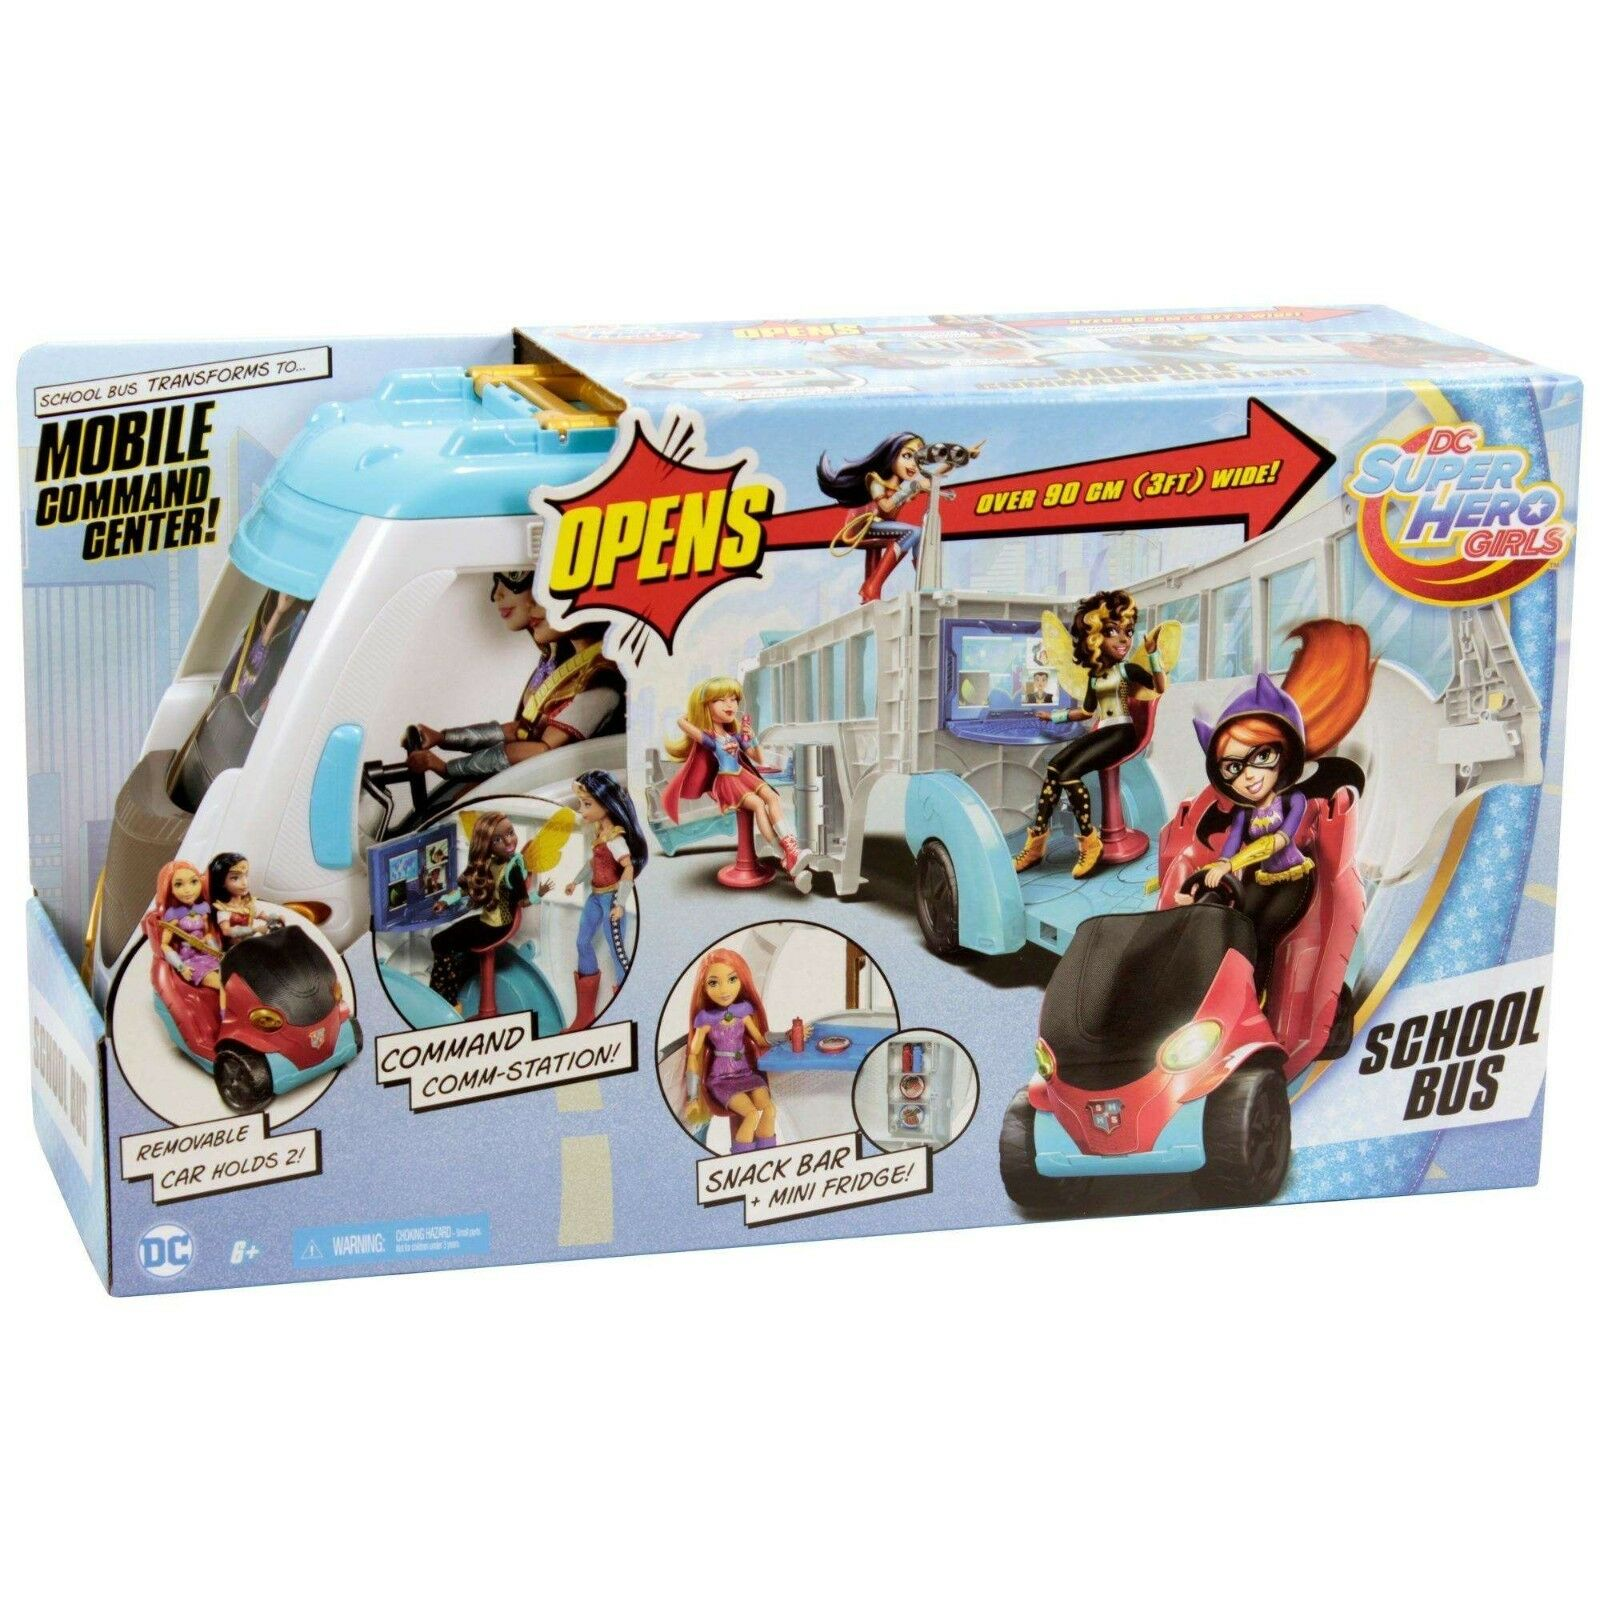 DC Super Hero Girls School Bus Vehicle Mobile Command Center Over 3ft Wide New